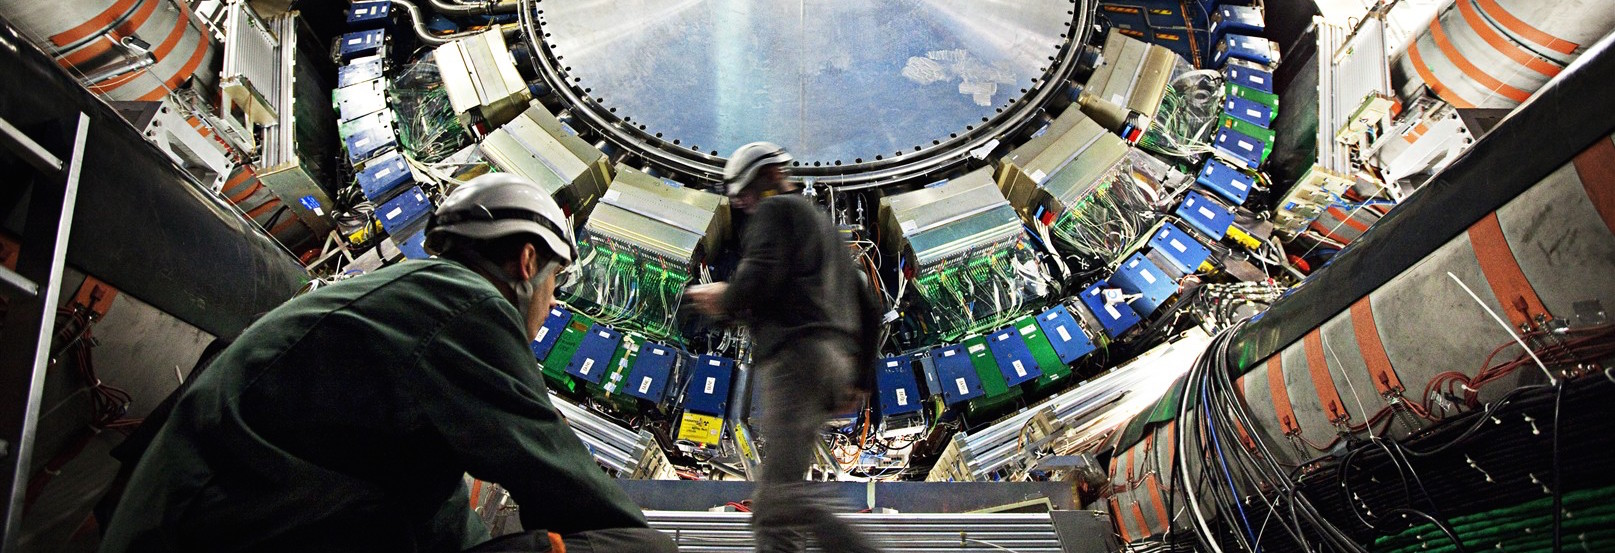 Physicists Downcast as New Particle 'Spotted' at LHC Vanishes With More Data